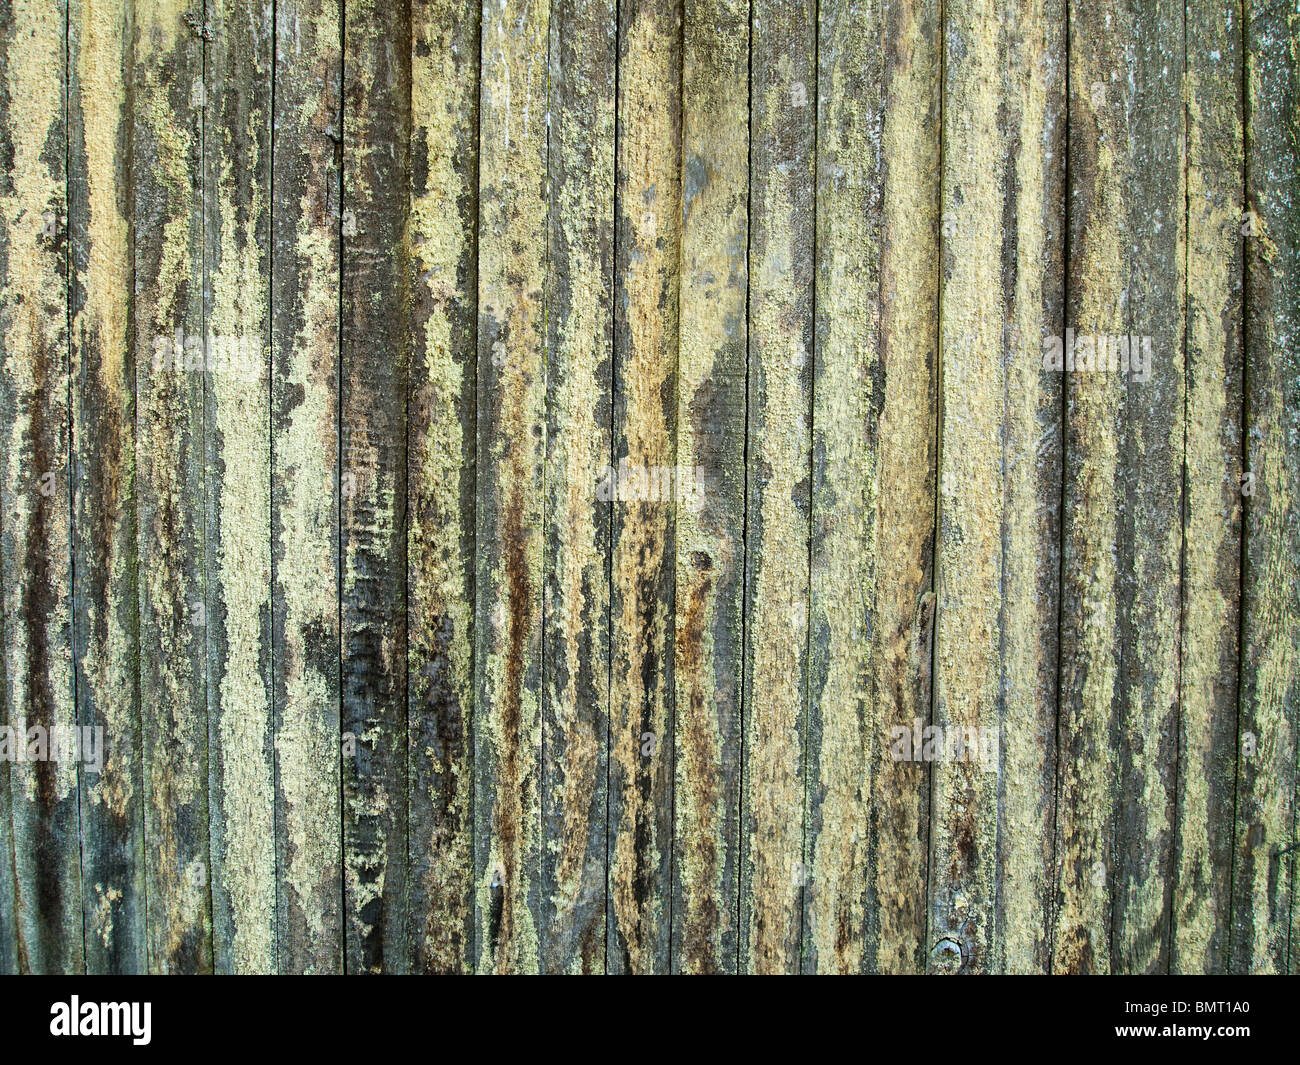 Wood Fence With Lichen - Stock Image